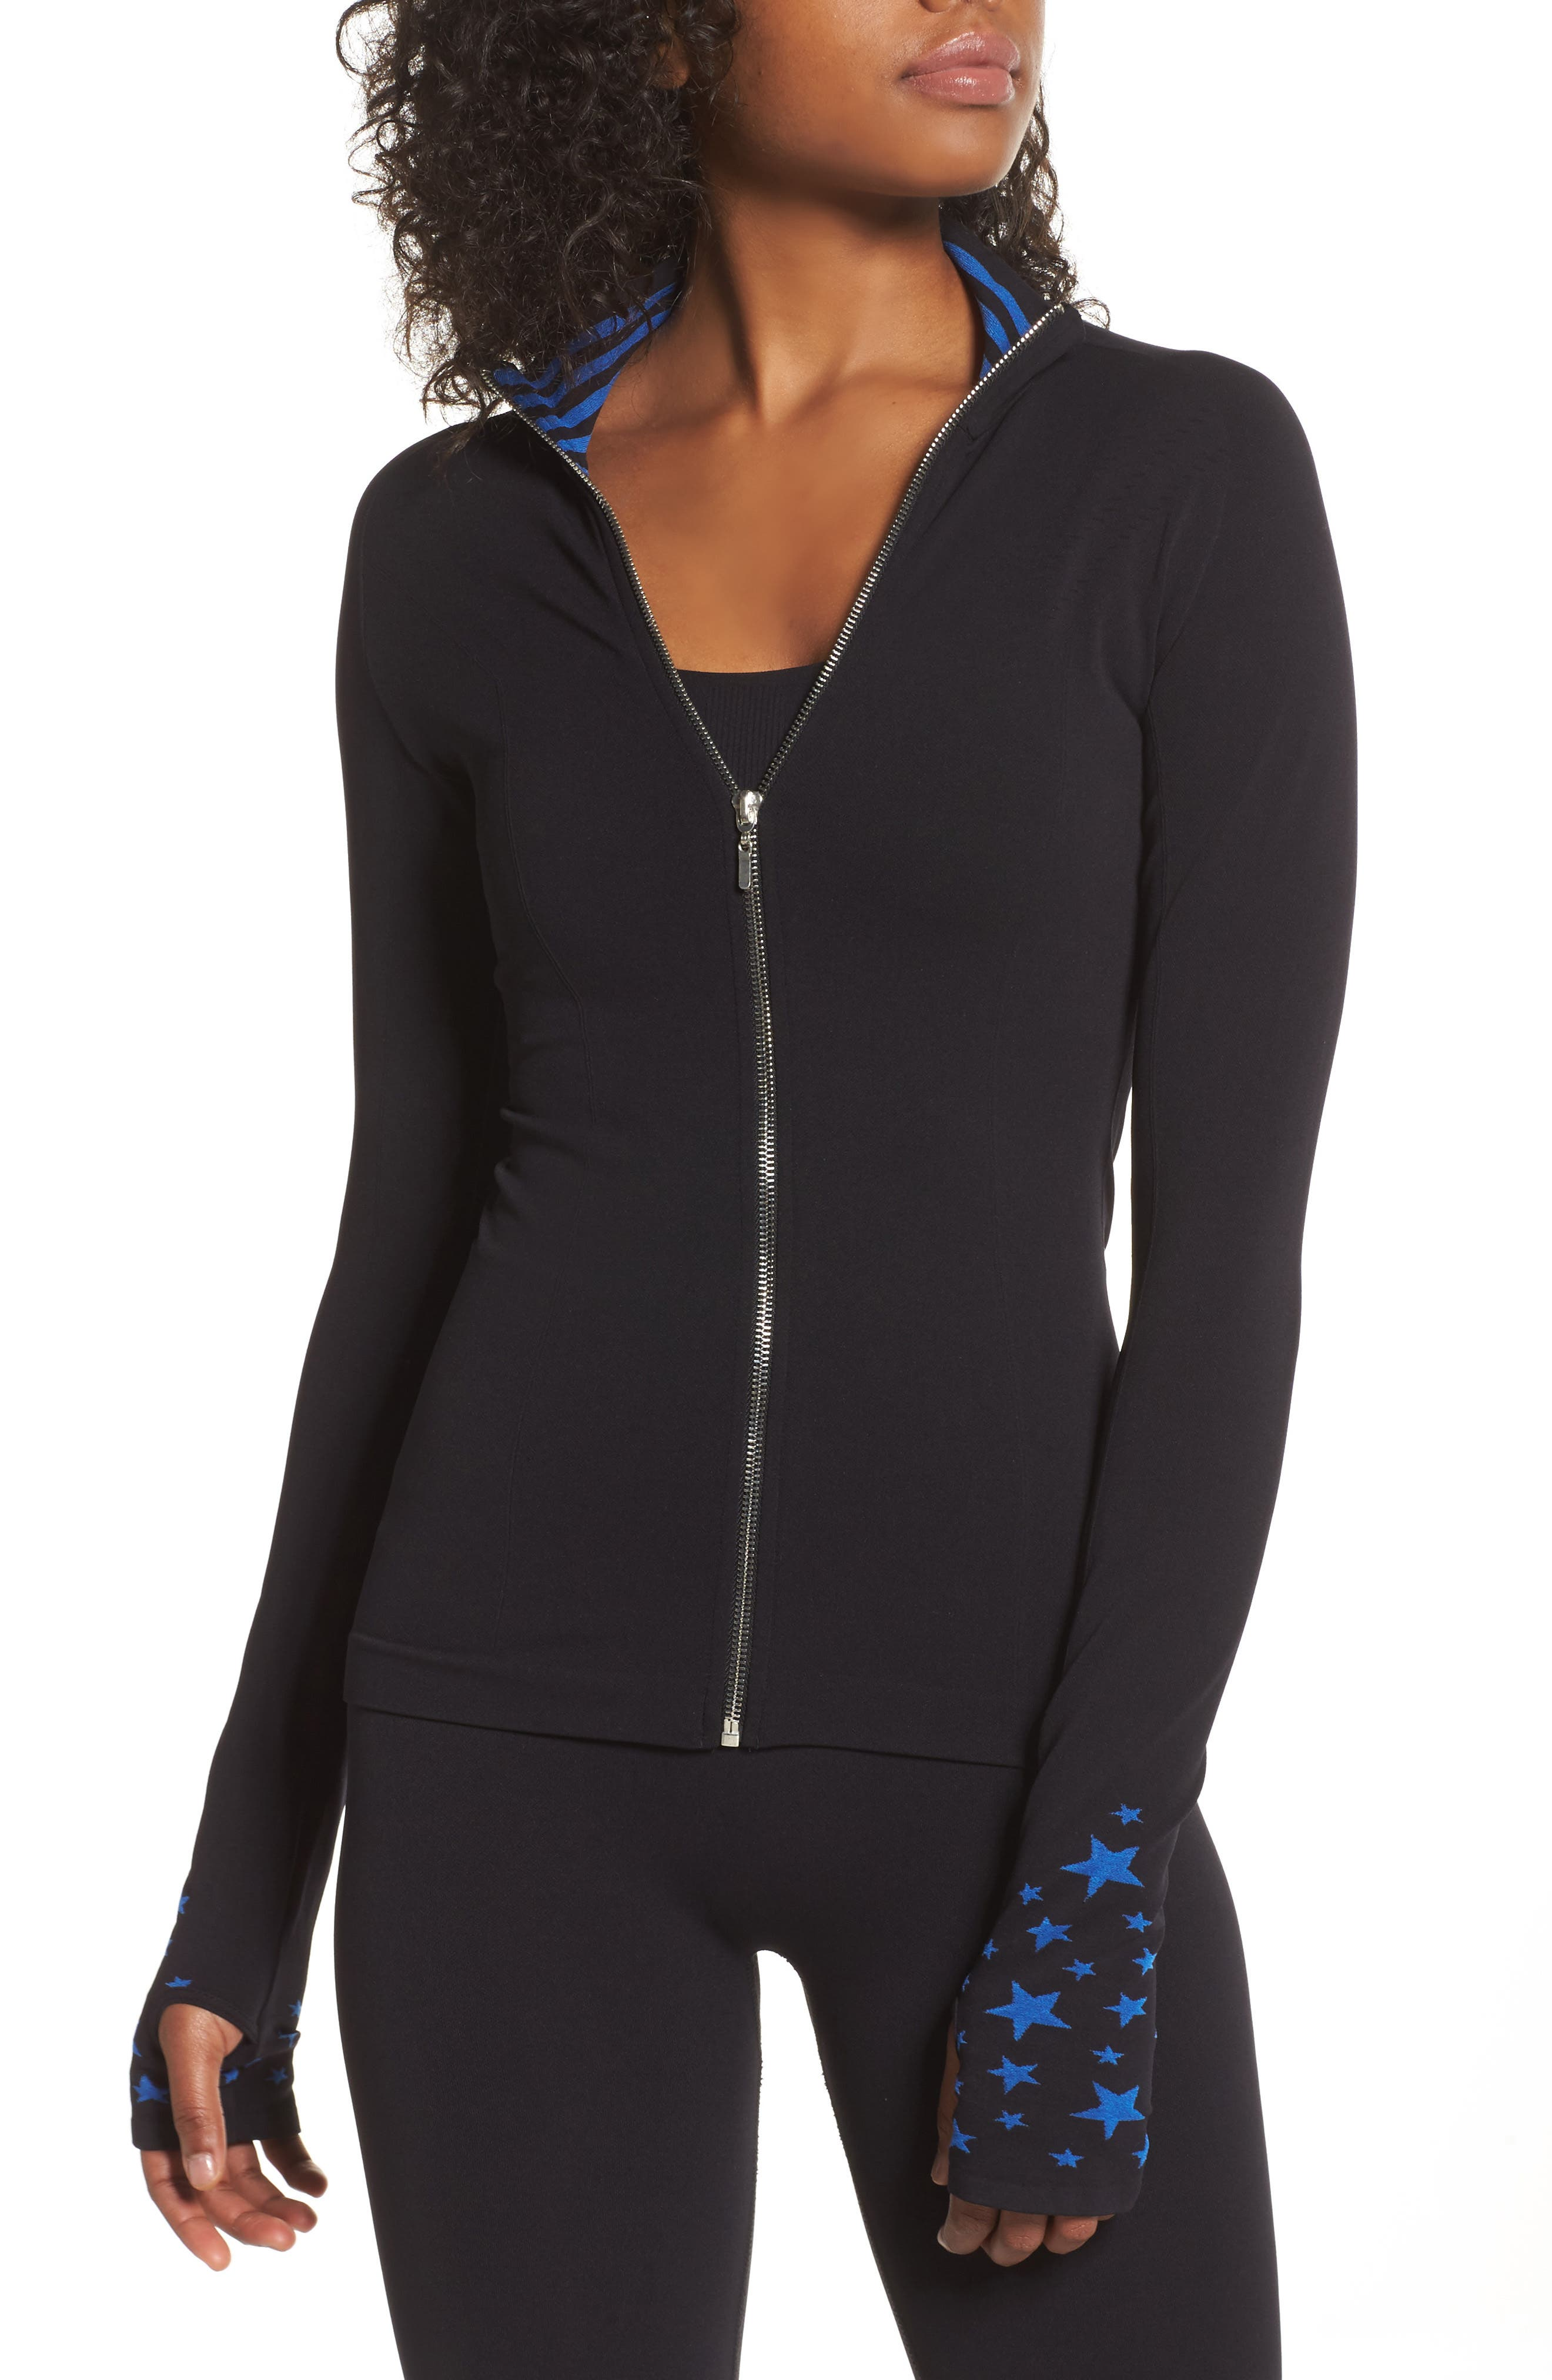 BoomBoom Athletica Seamless Star Jacket